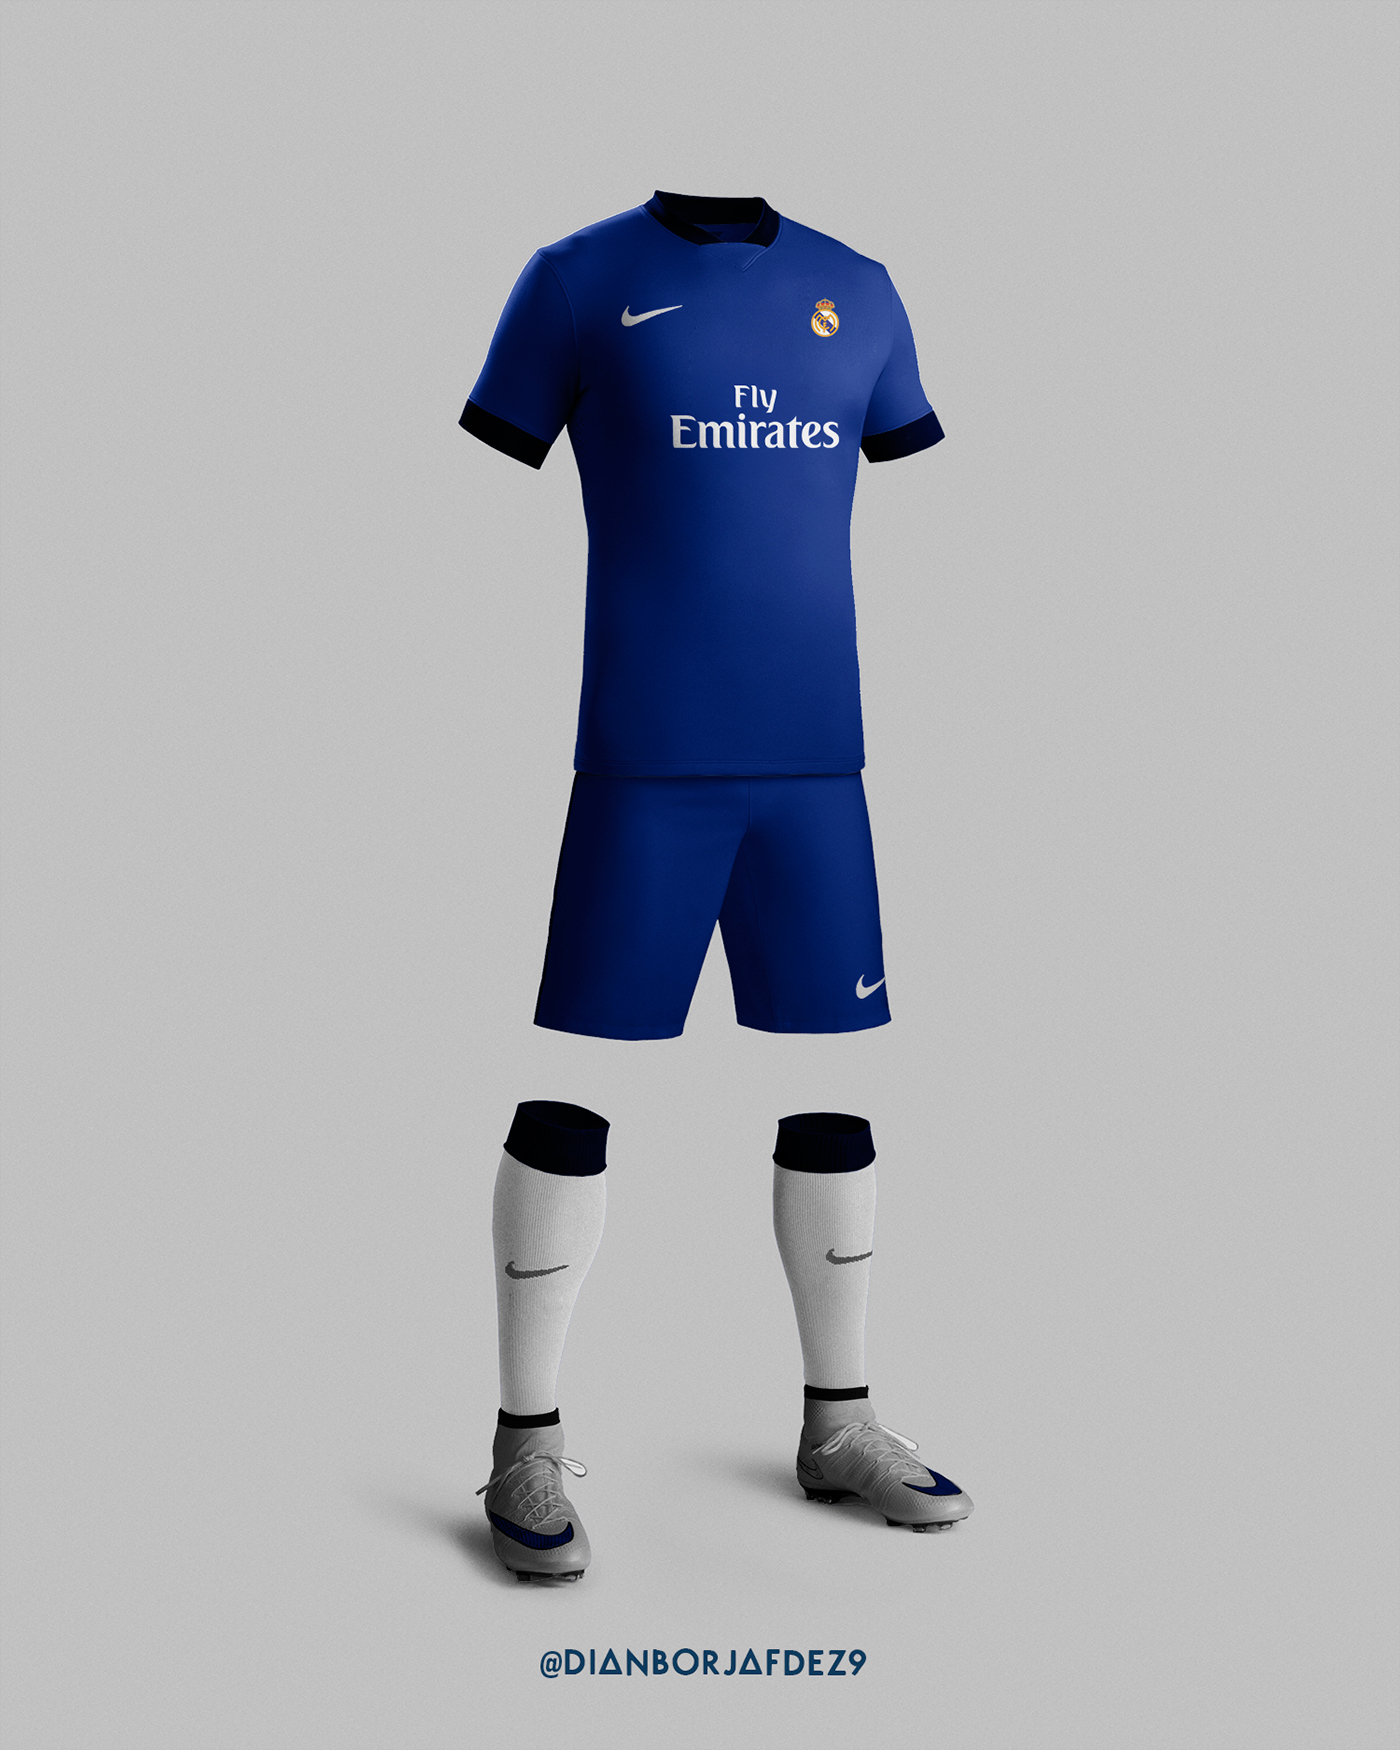 separation shoes dd6de 31b48 Real Madrid Kit 2017/18 with Nike (Concept) on Behance